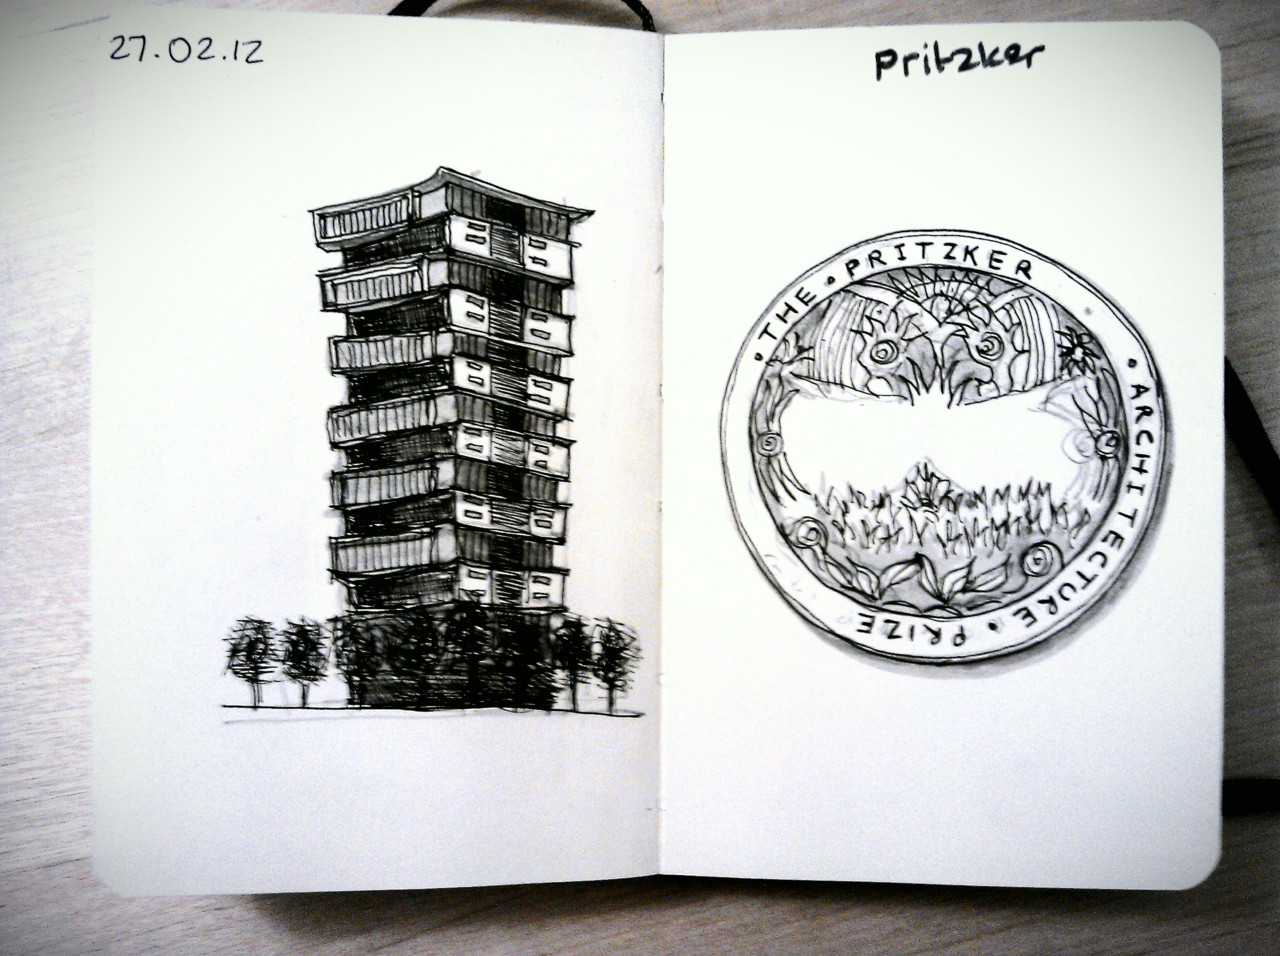 28 drawings later … day 27 … pritzker (congratulations wang shu)